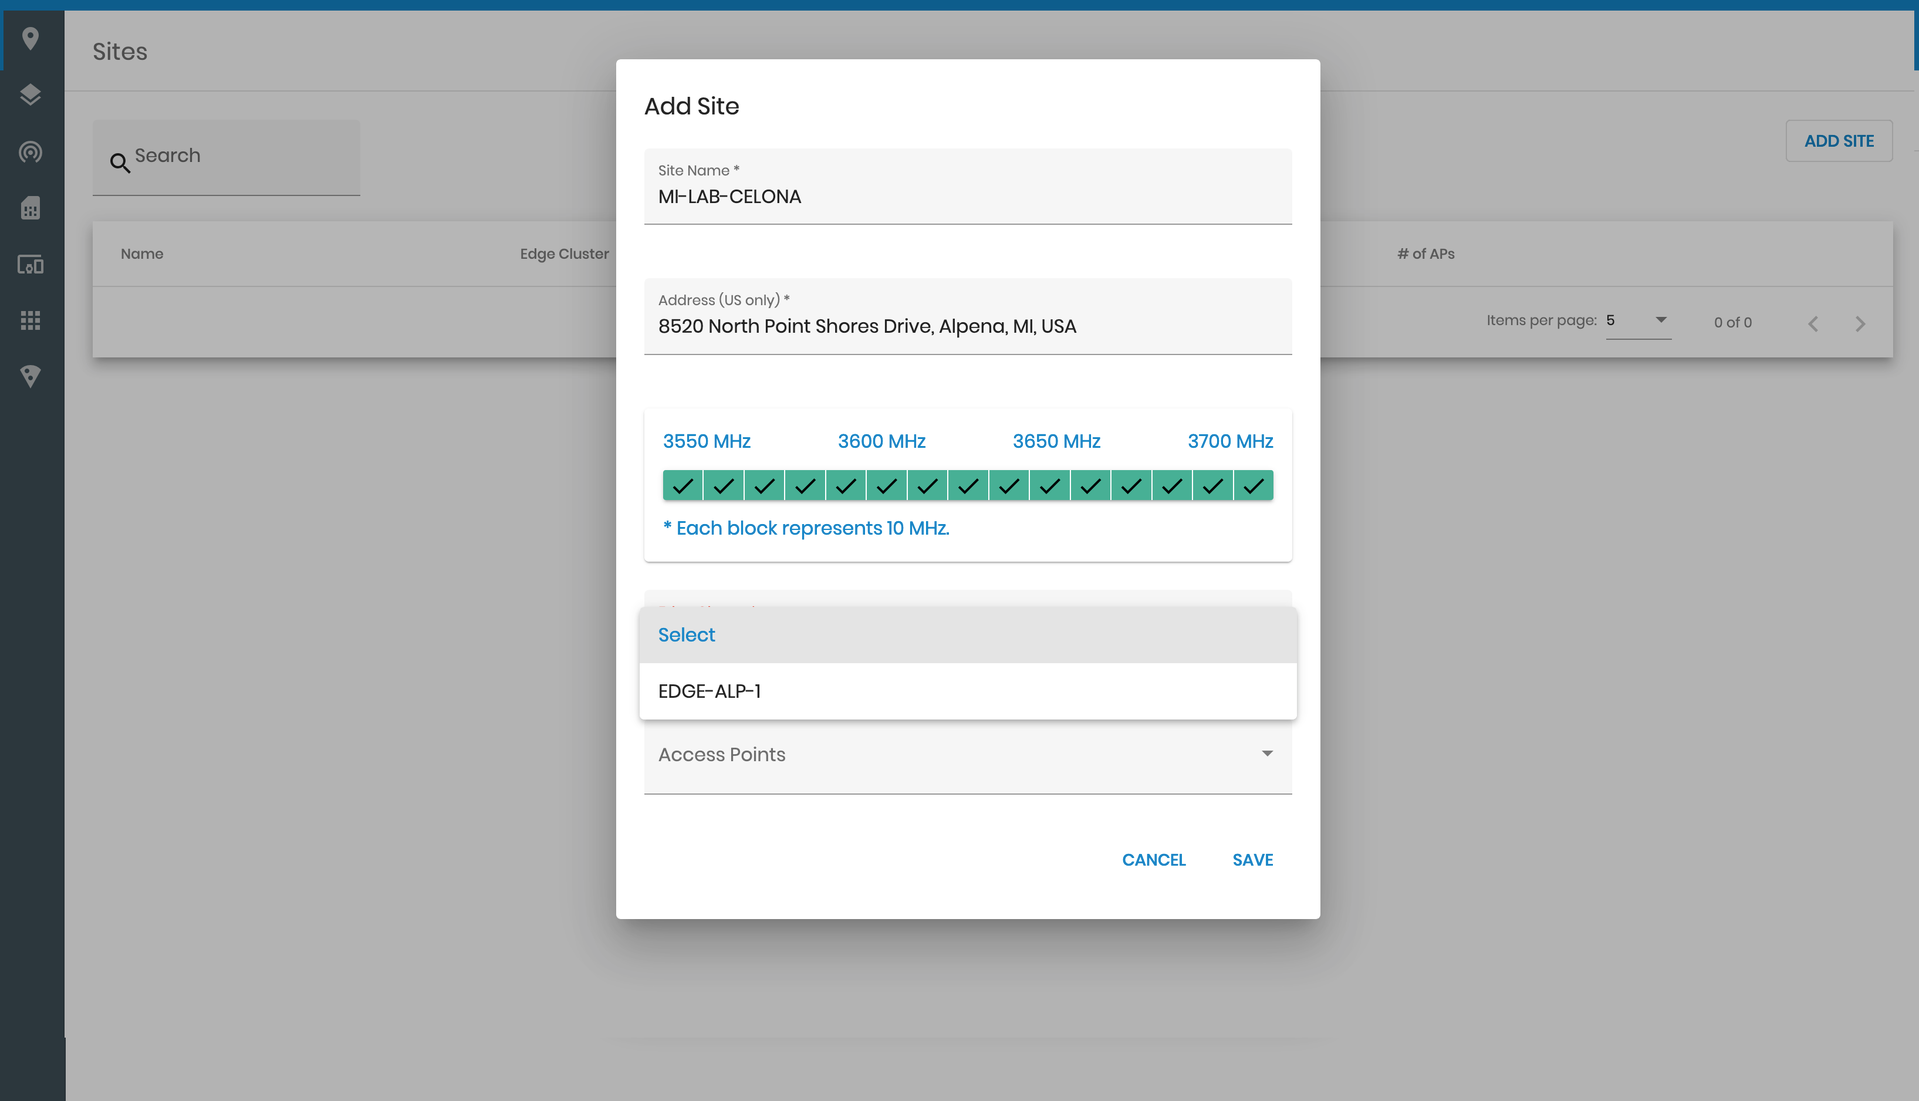 Adding Edge Clusters to a site on the Celona Orchestrator